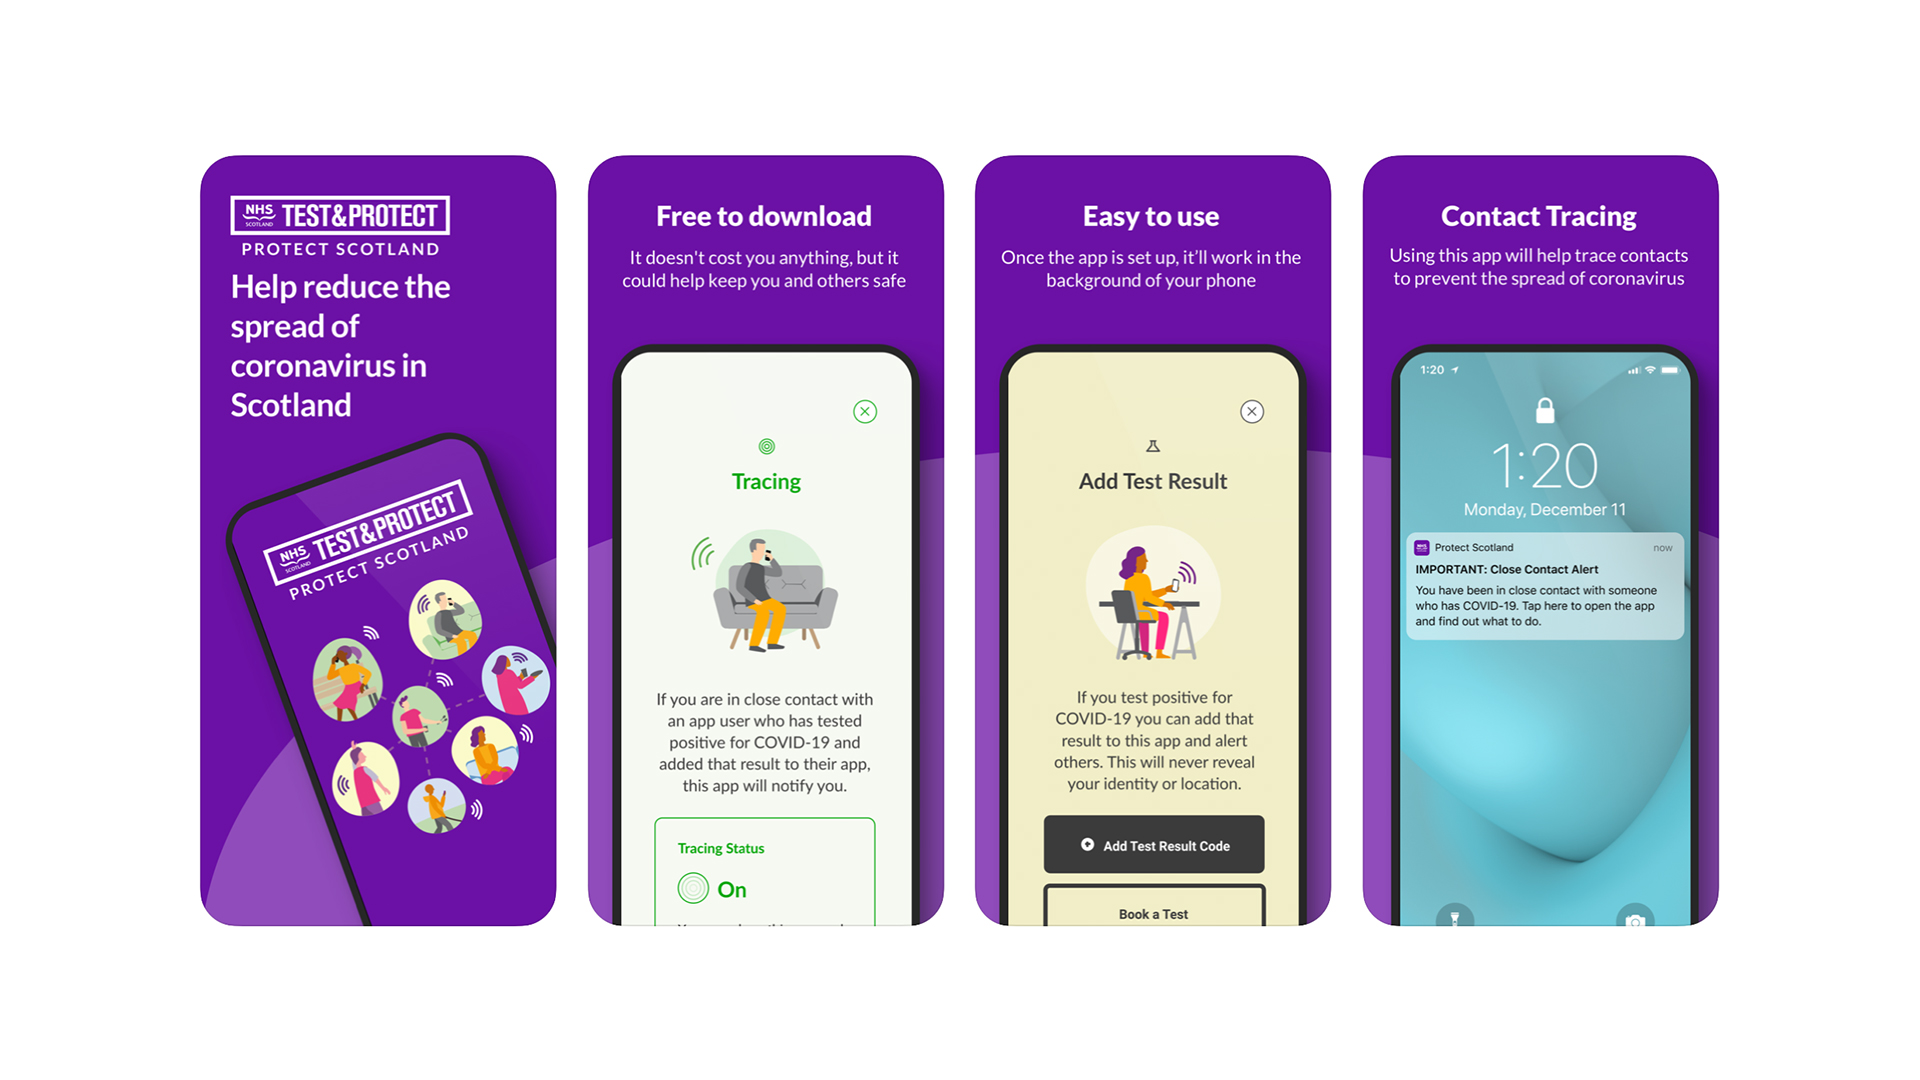 Scotland launches COVID-19 contact tracing app with Apple and Google API - RapidAPI